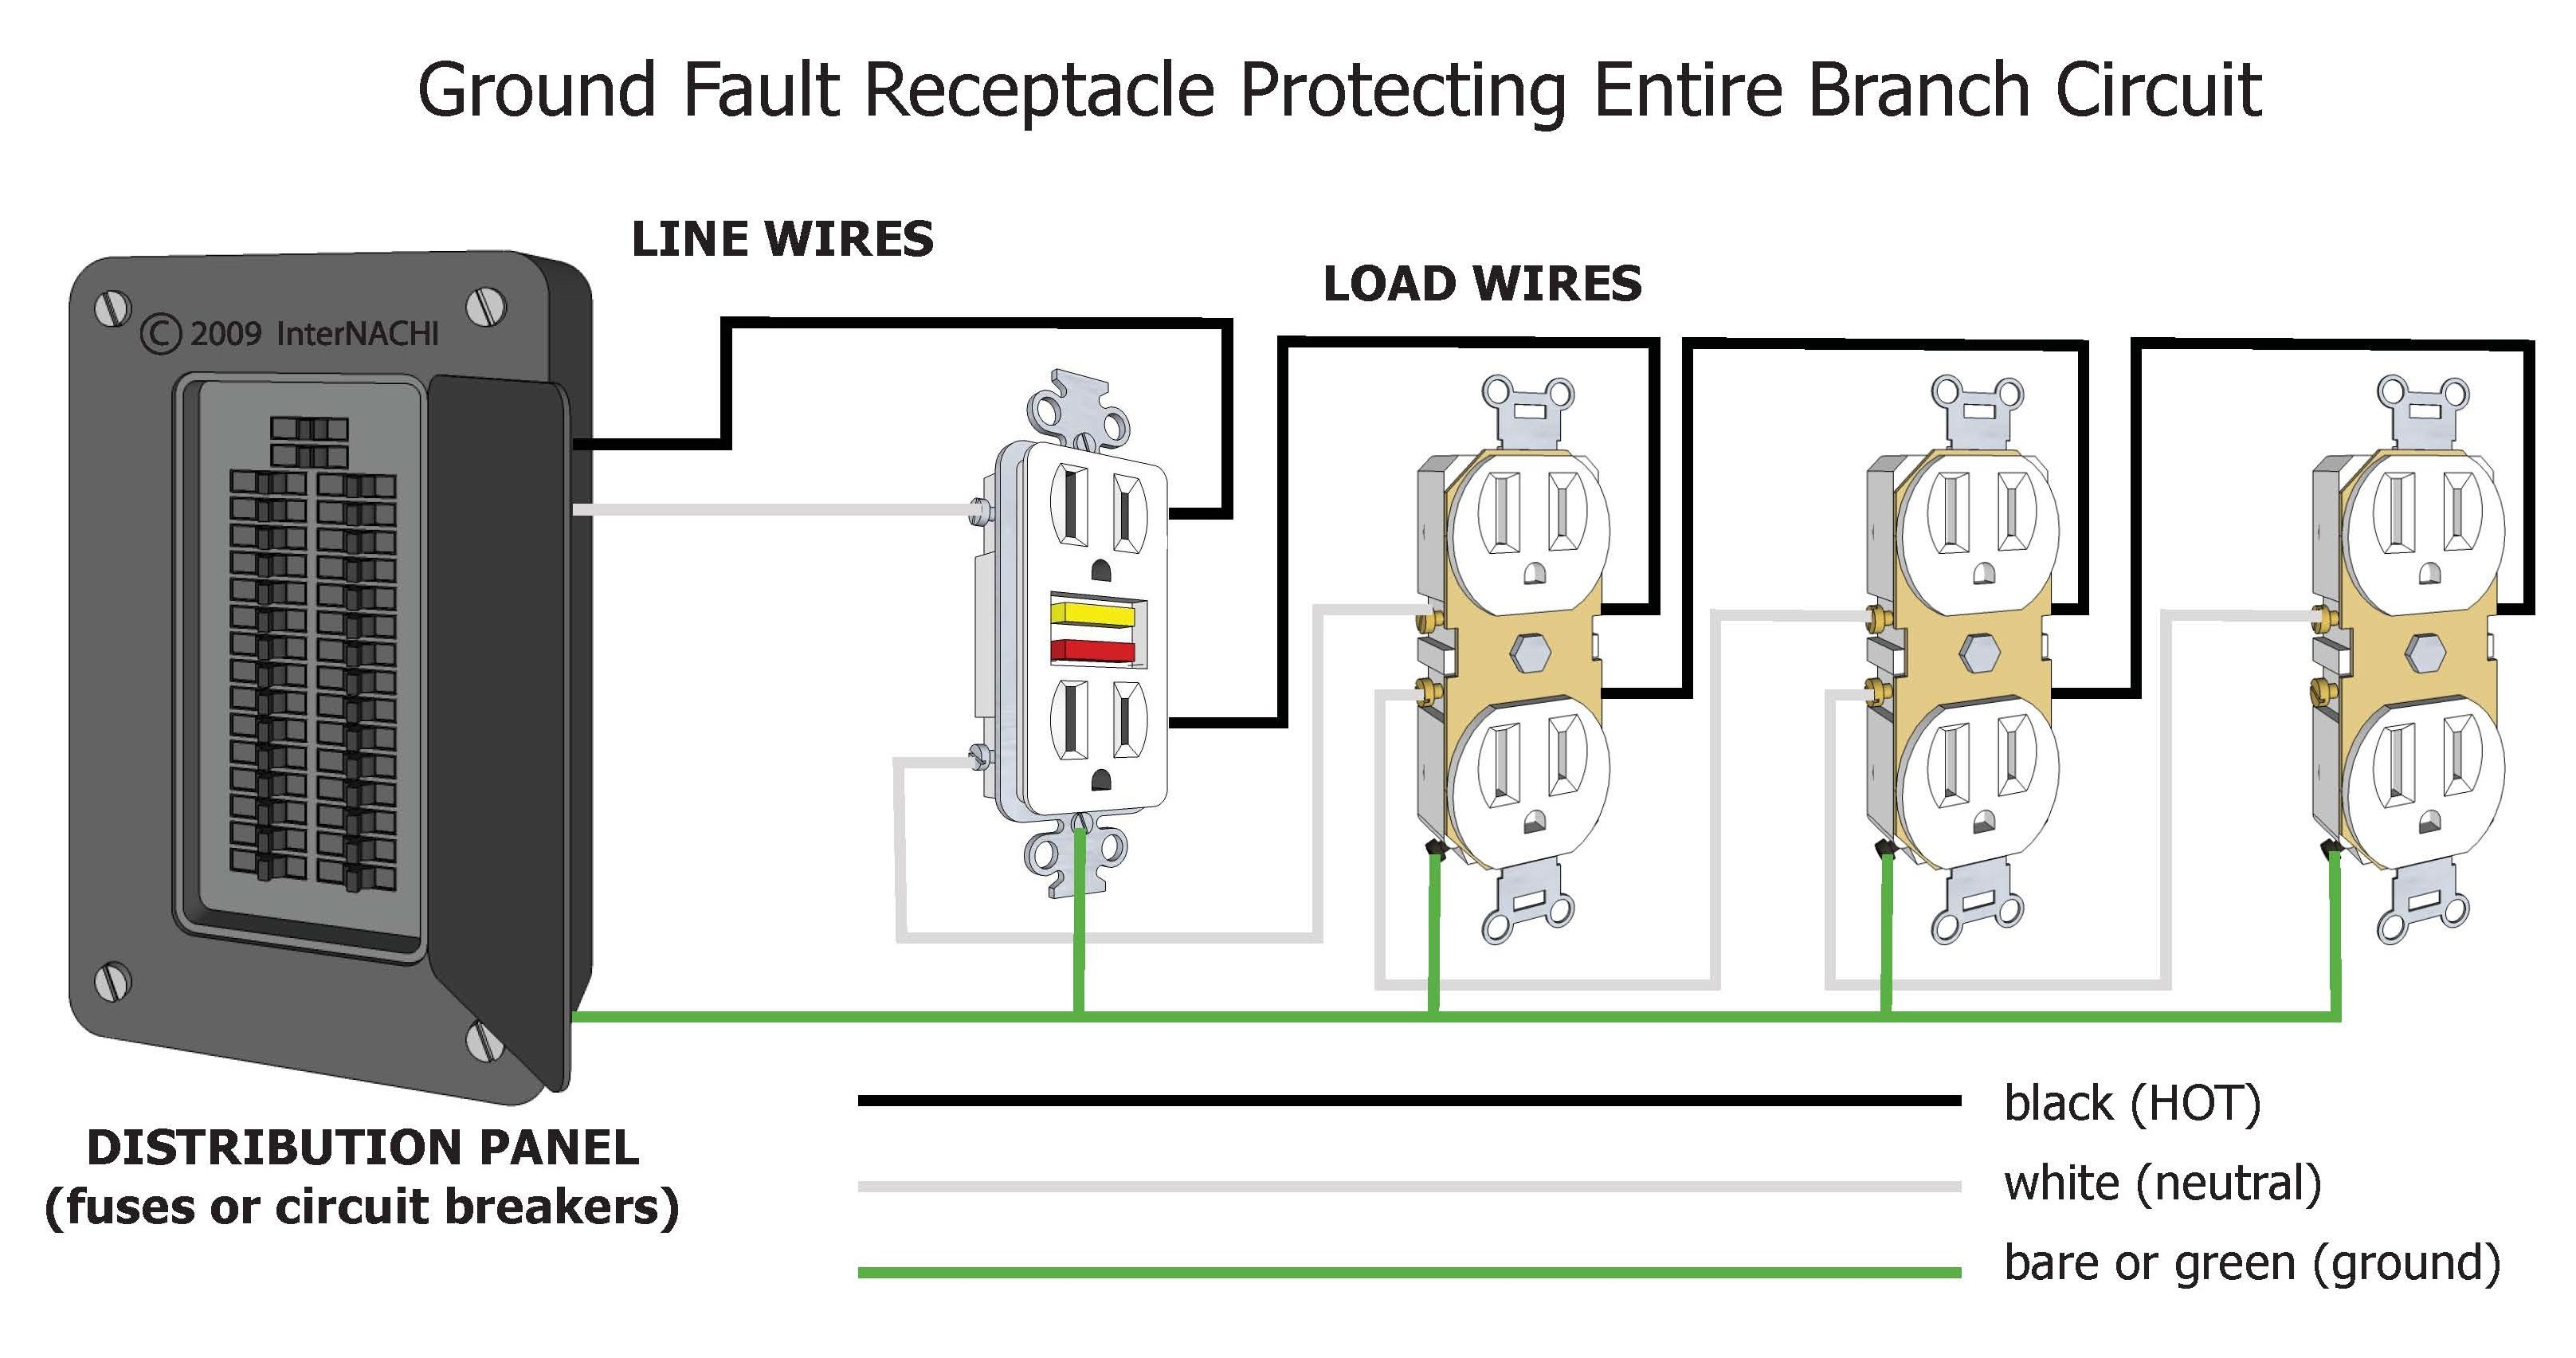 gfci branch circuit color gfci circuit breaker wiring diagram efcaviation com gfci wiring diagram at pacquiaovsvargaslive.co